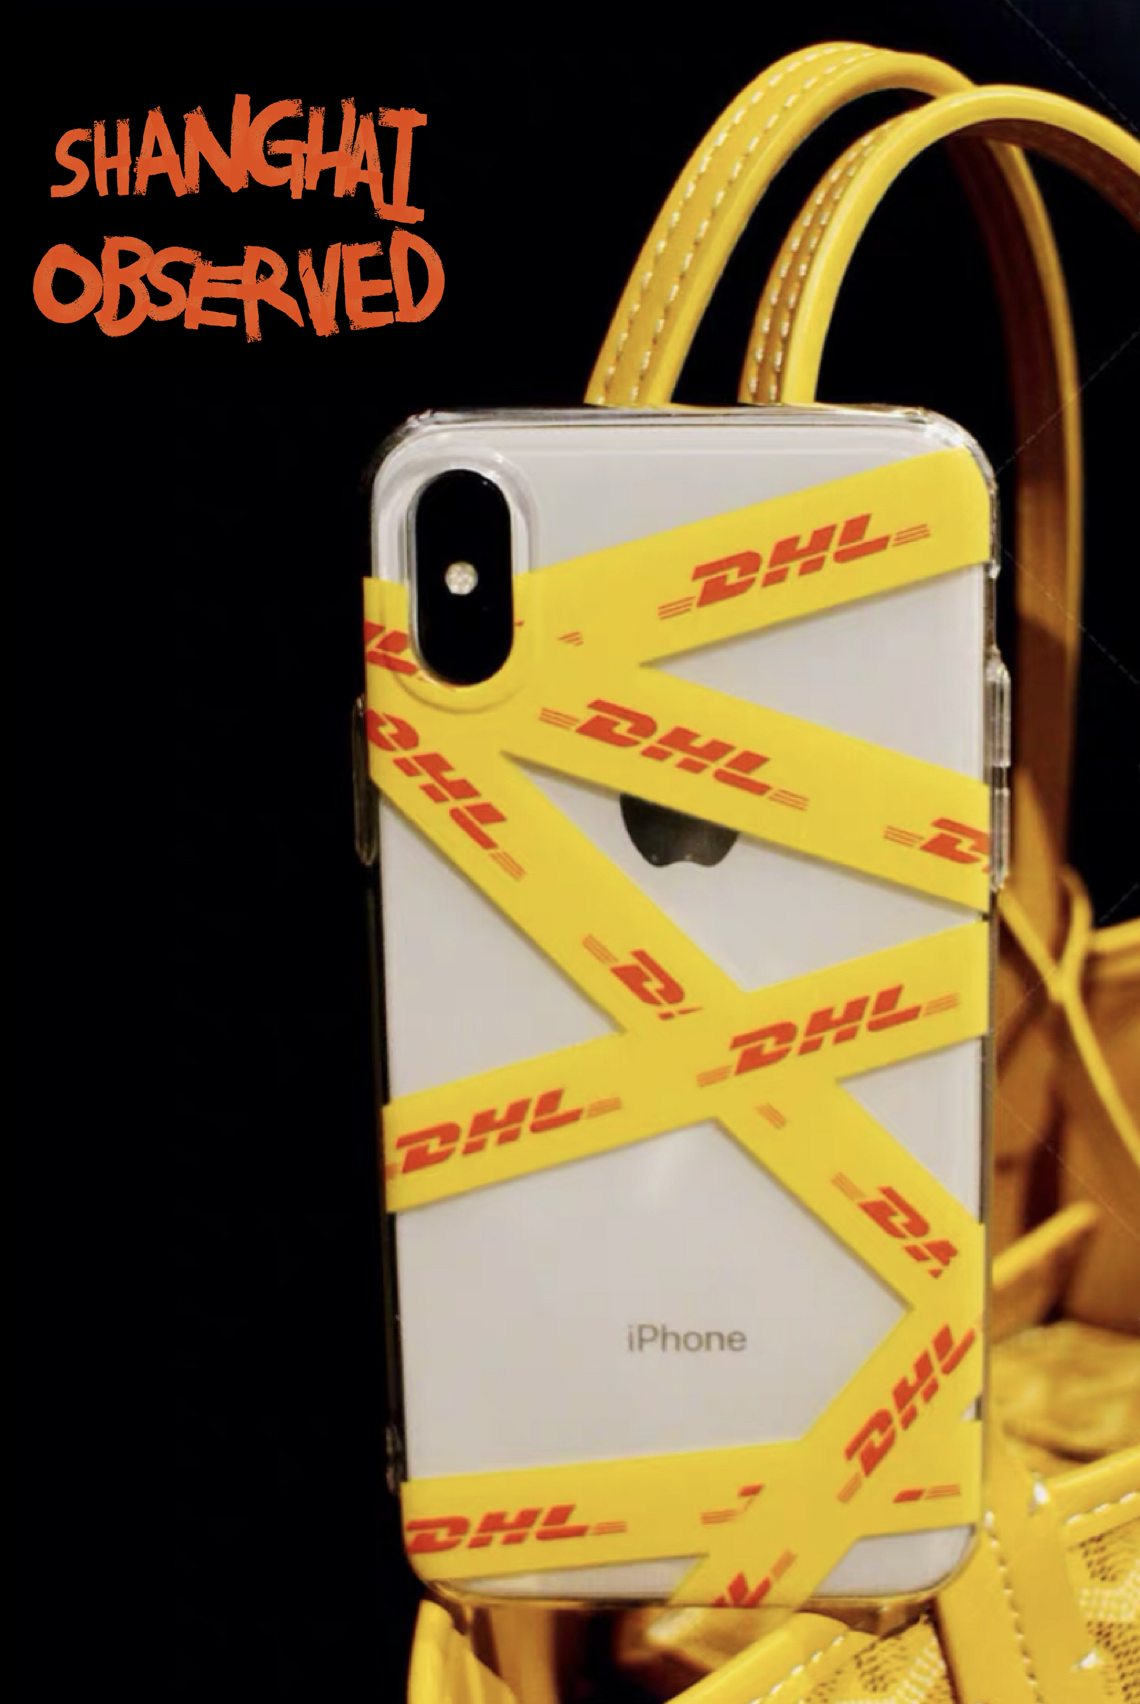 1599c90c4a DHL PHONE CASE - Shanghaiobserved